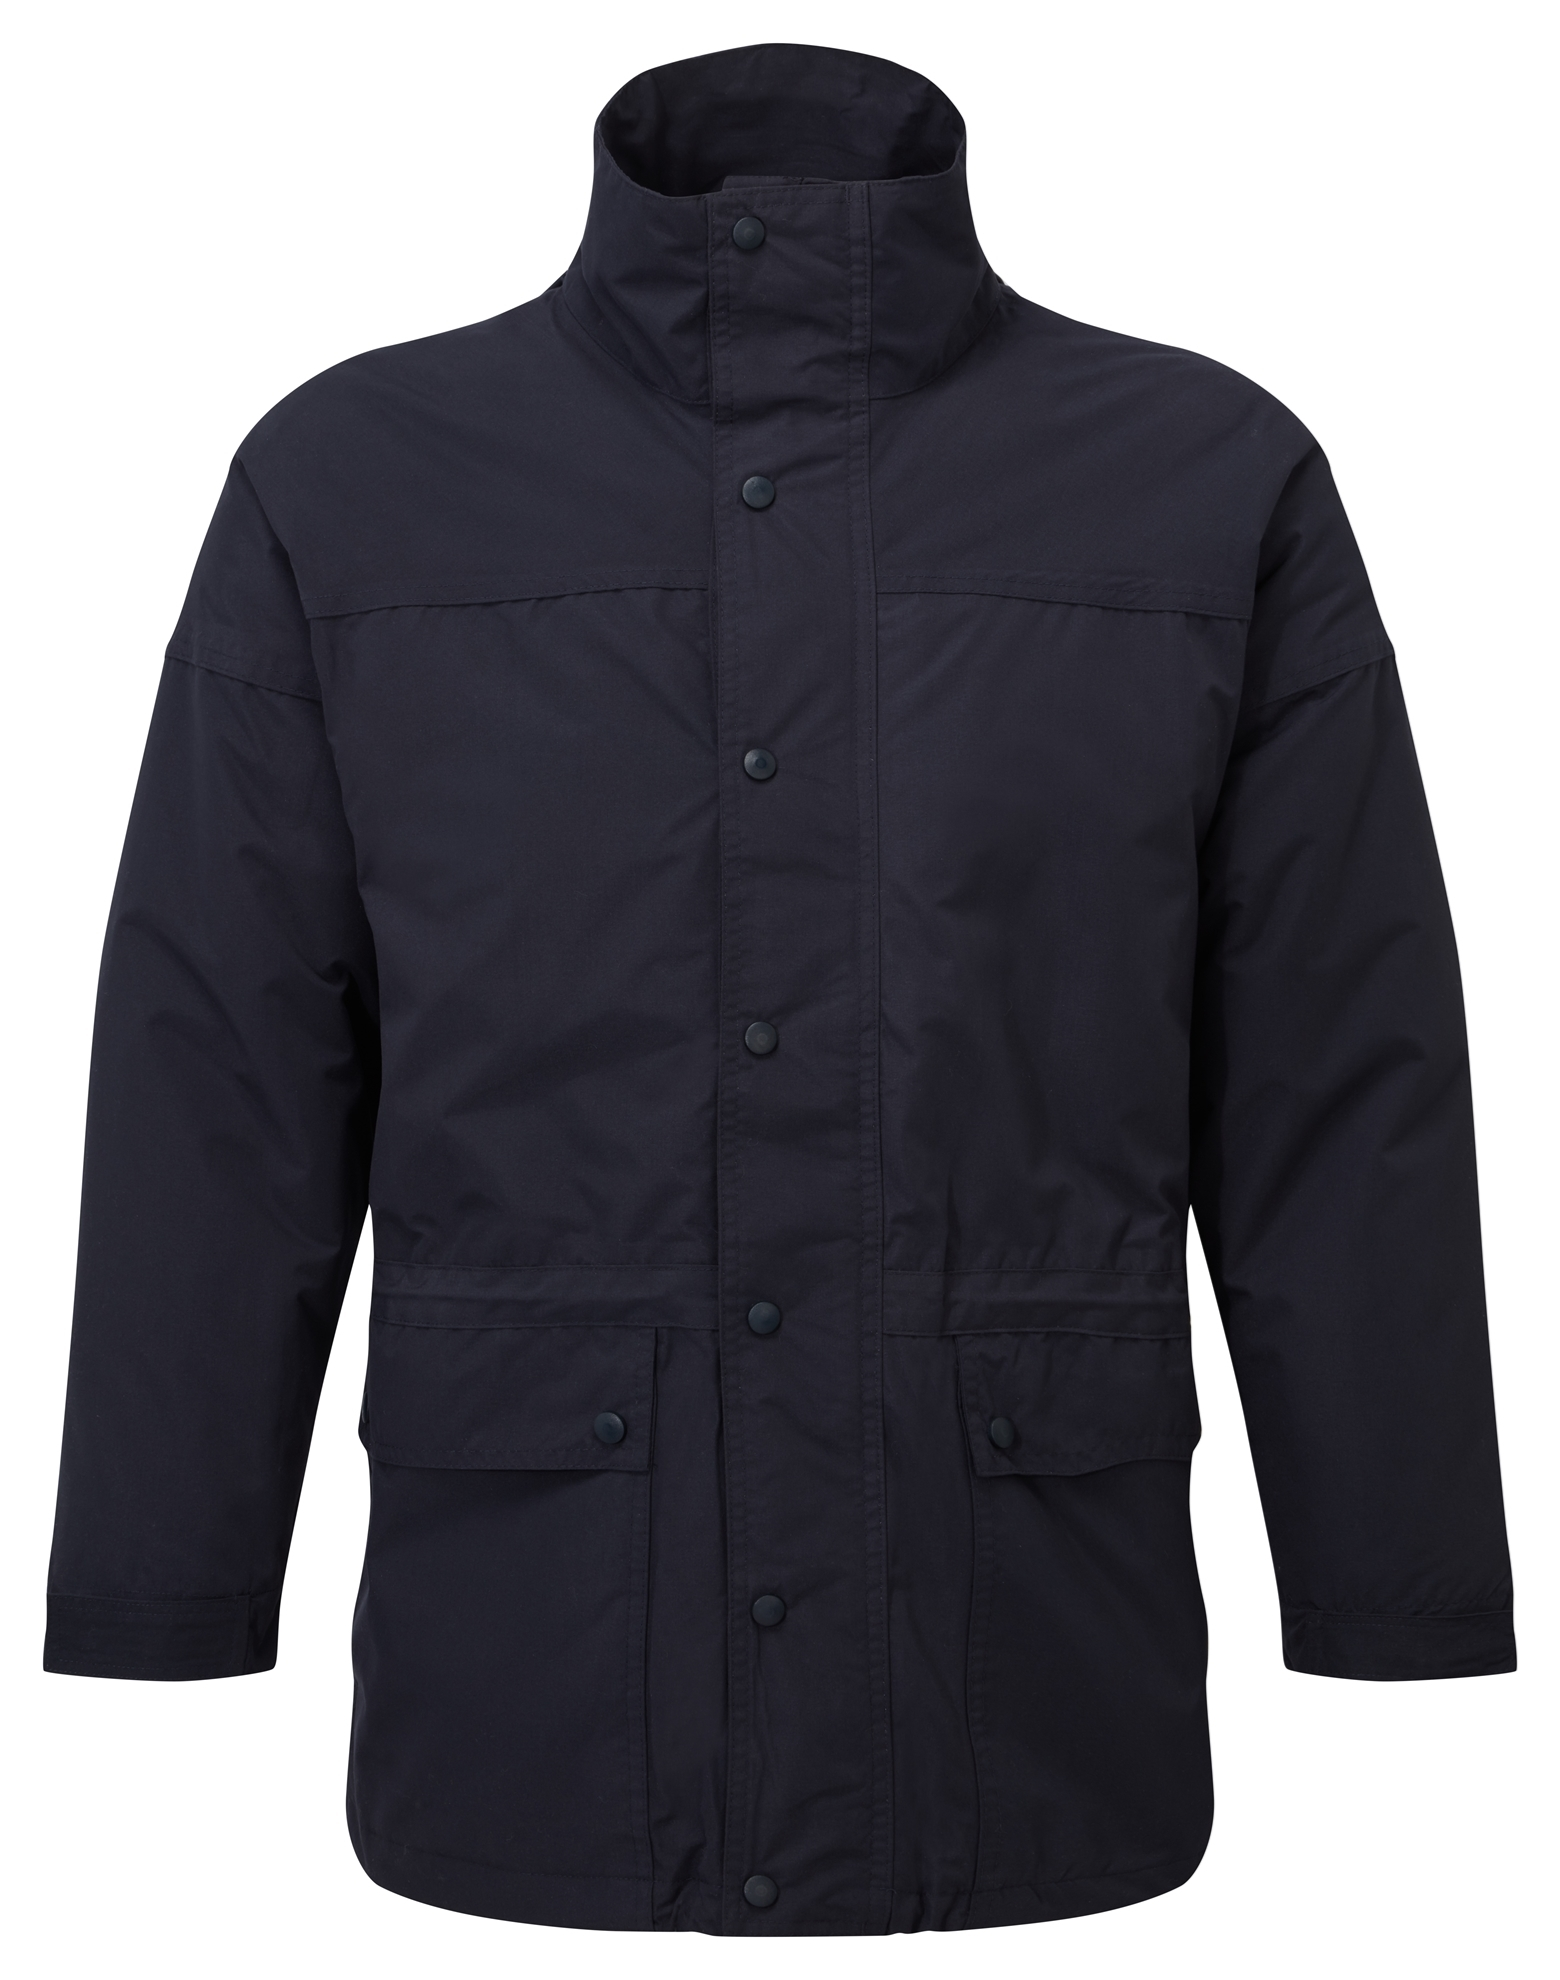 Picture of Waterproof Unisex Padded Jacket - Navy